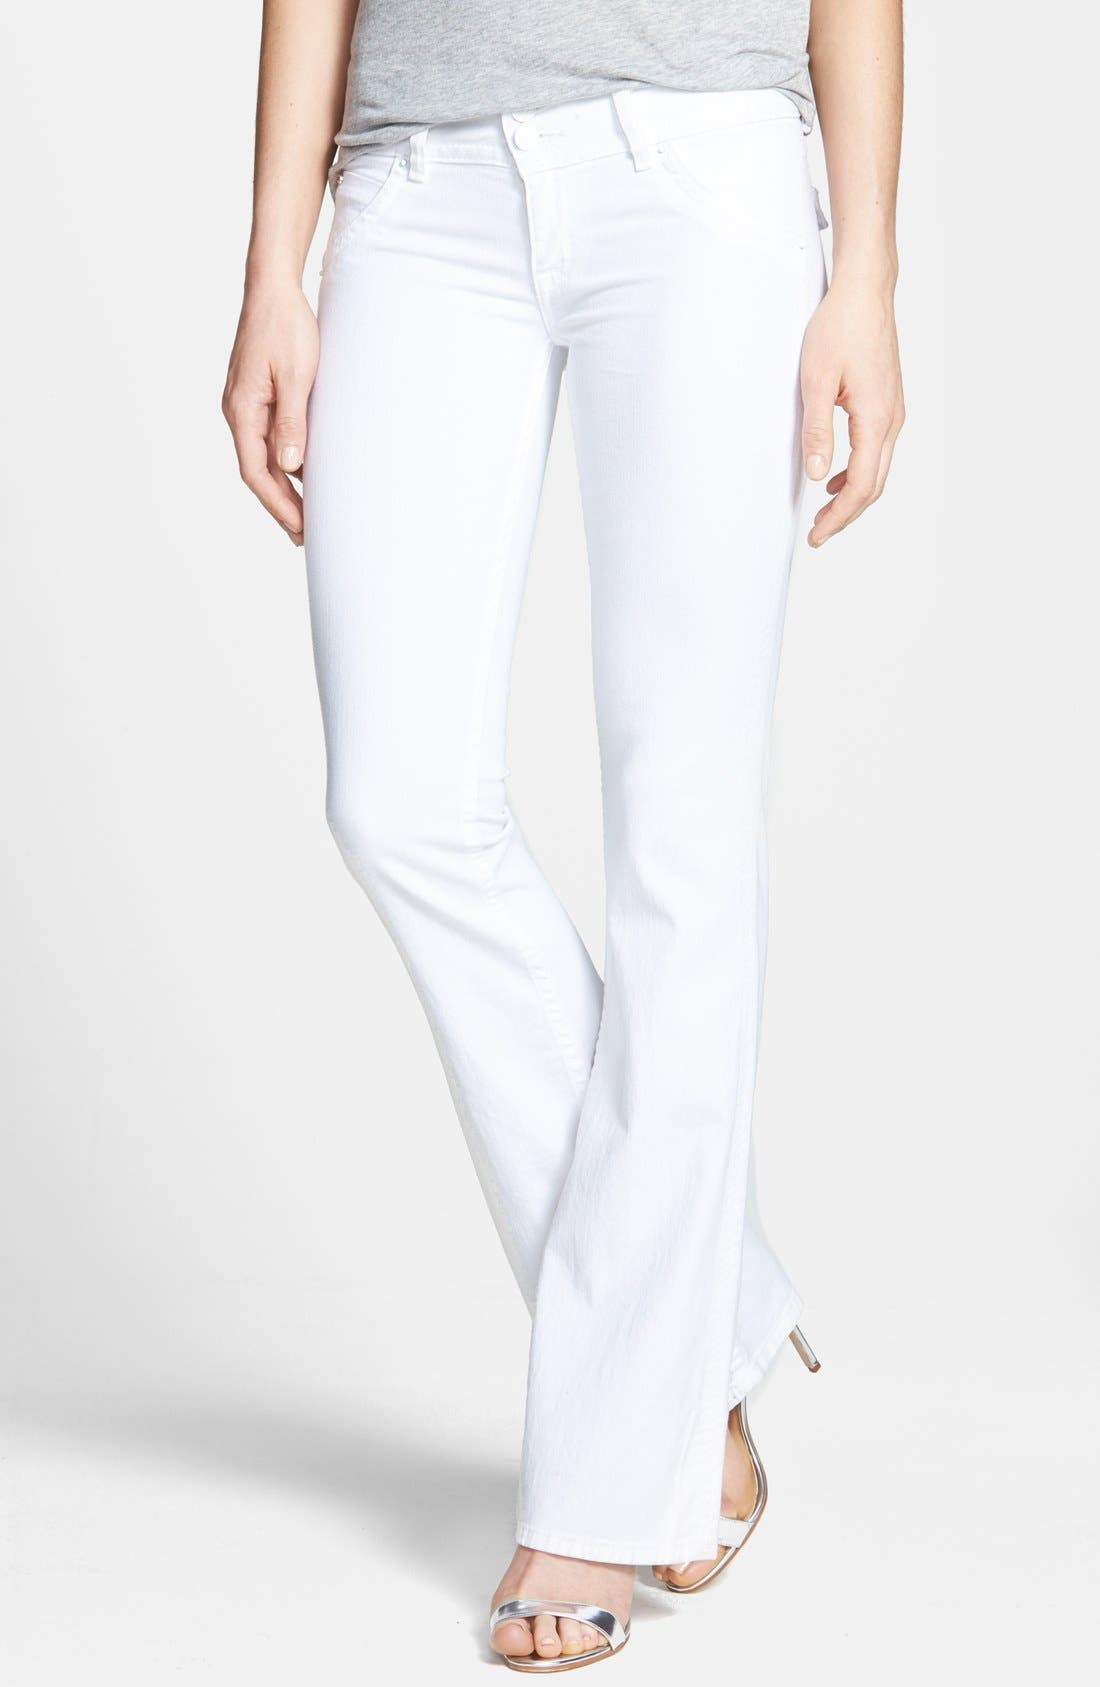 Alternate Image 1 Selected - Hudson Jeans Signature Flap Pocket Bootcut Stretch Jeans (White)